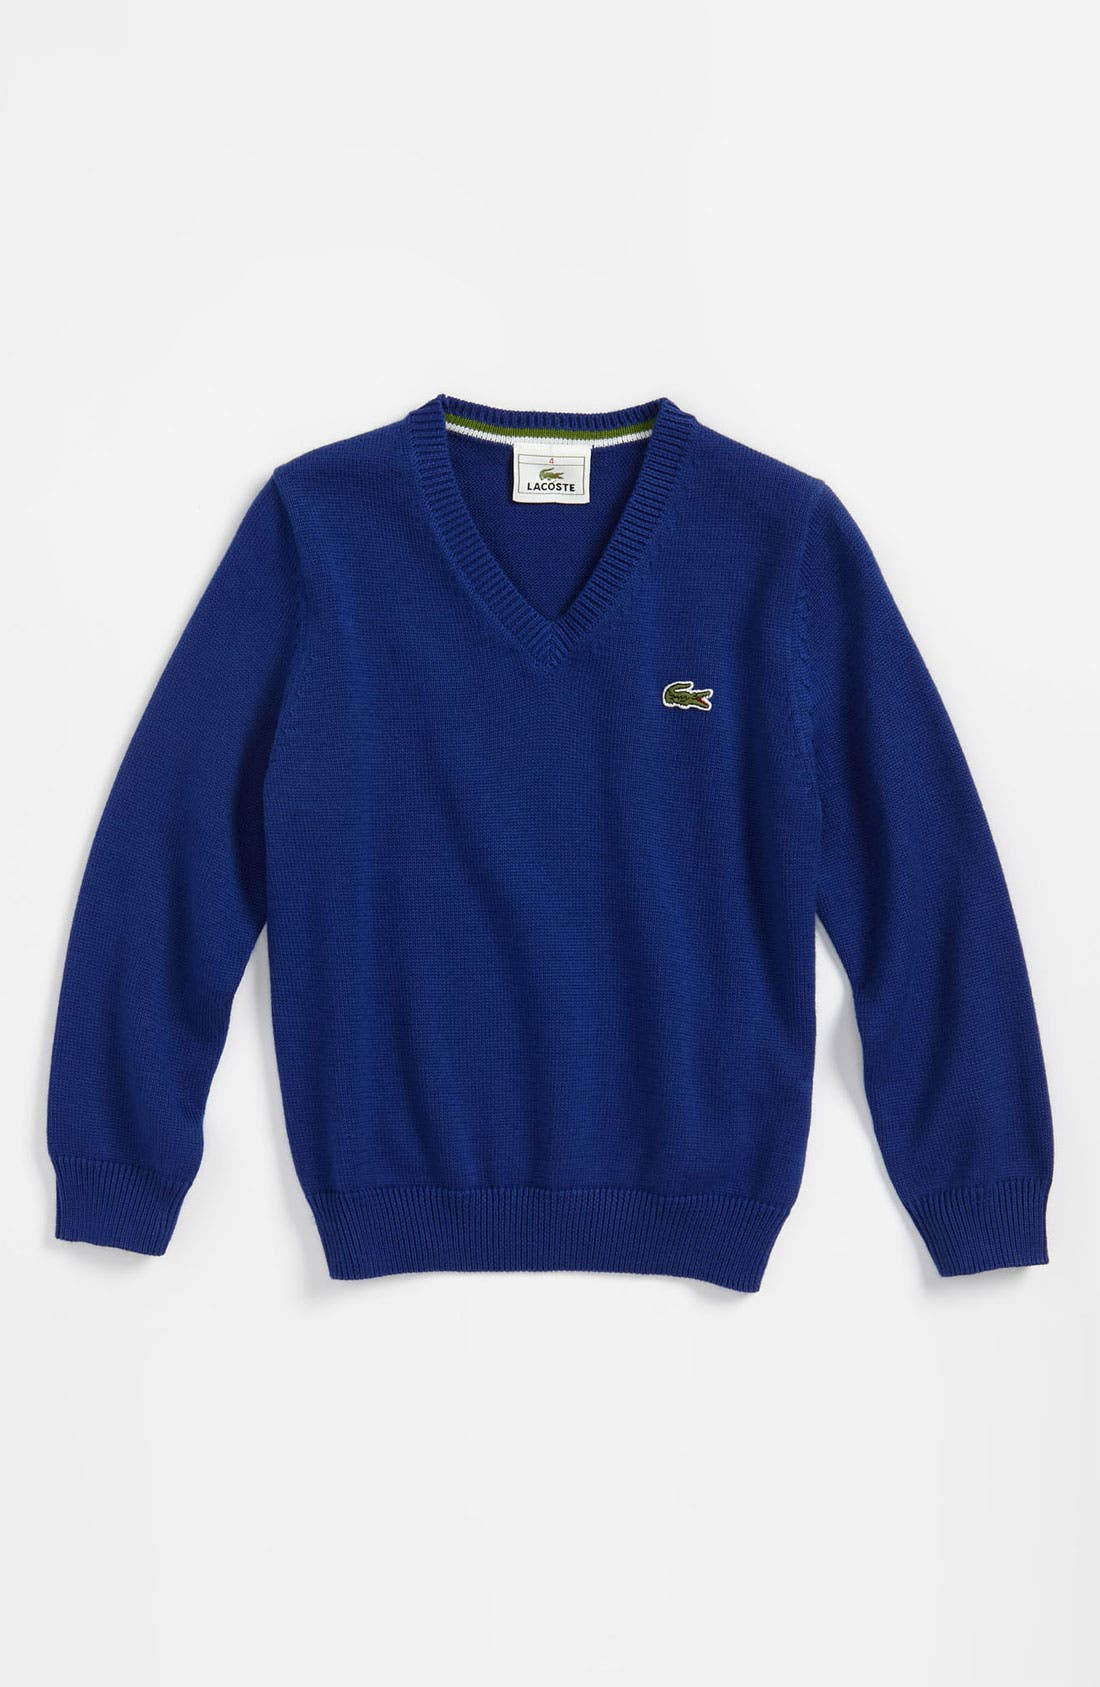 Alternate Image 1 Selected - Lacoste V-Neck Sweater (Toddler)